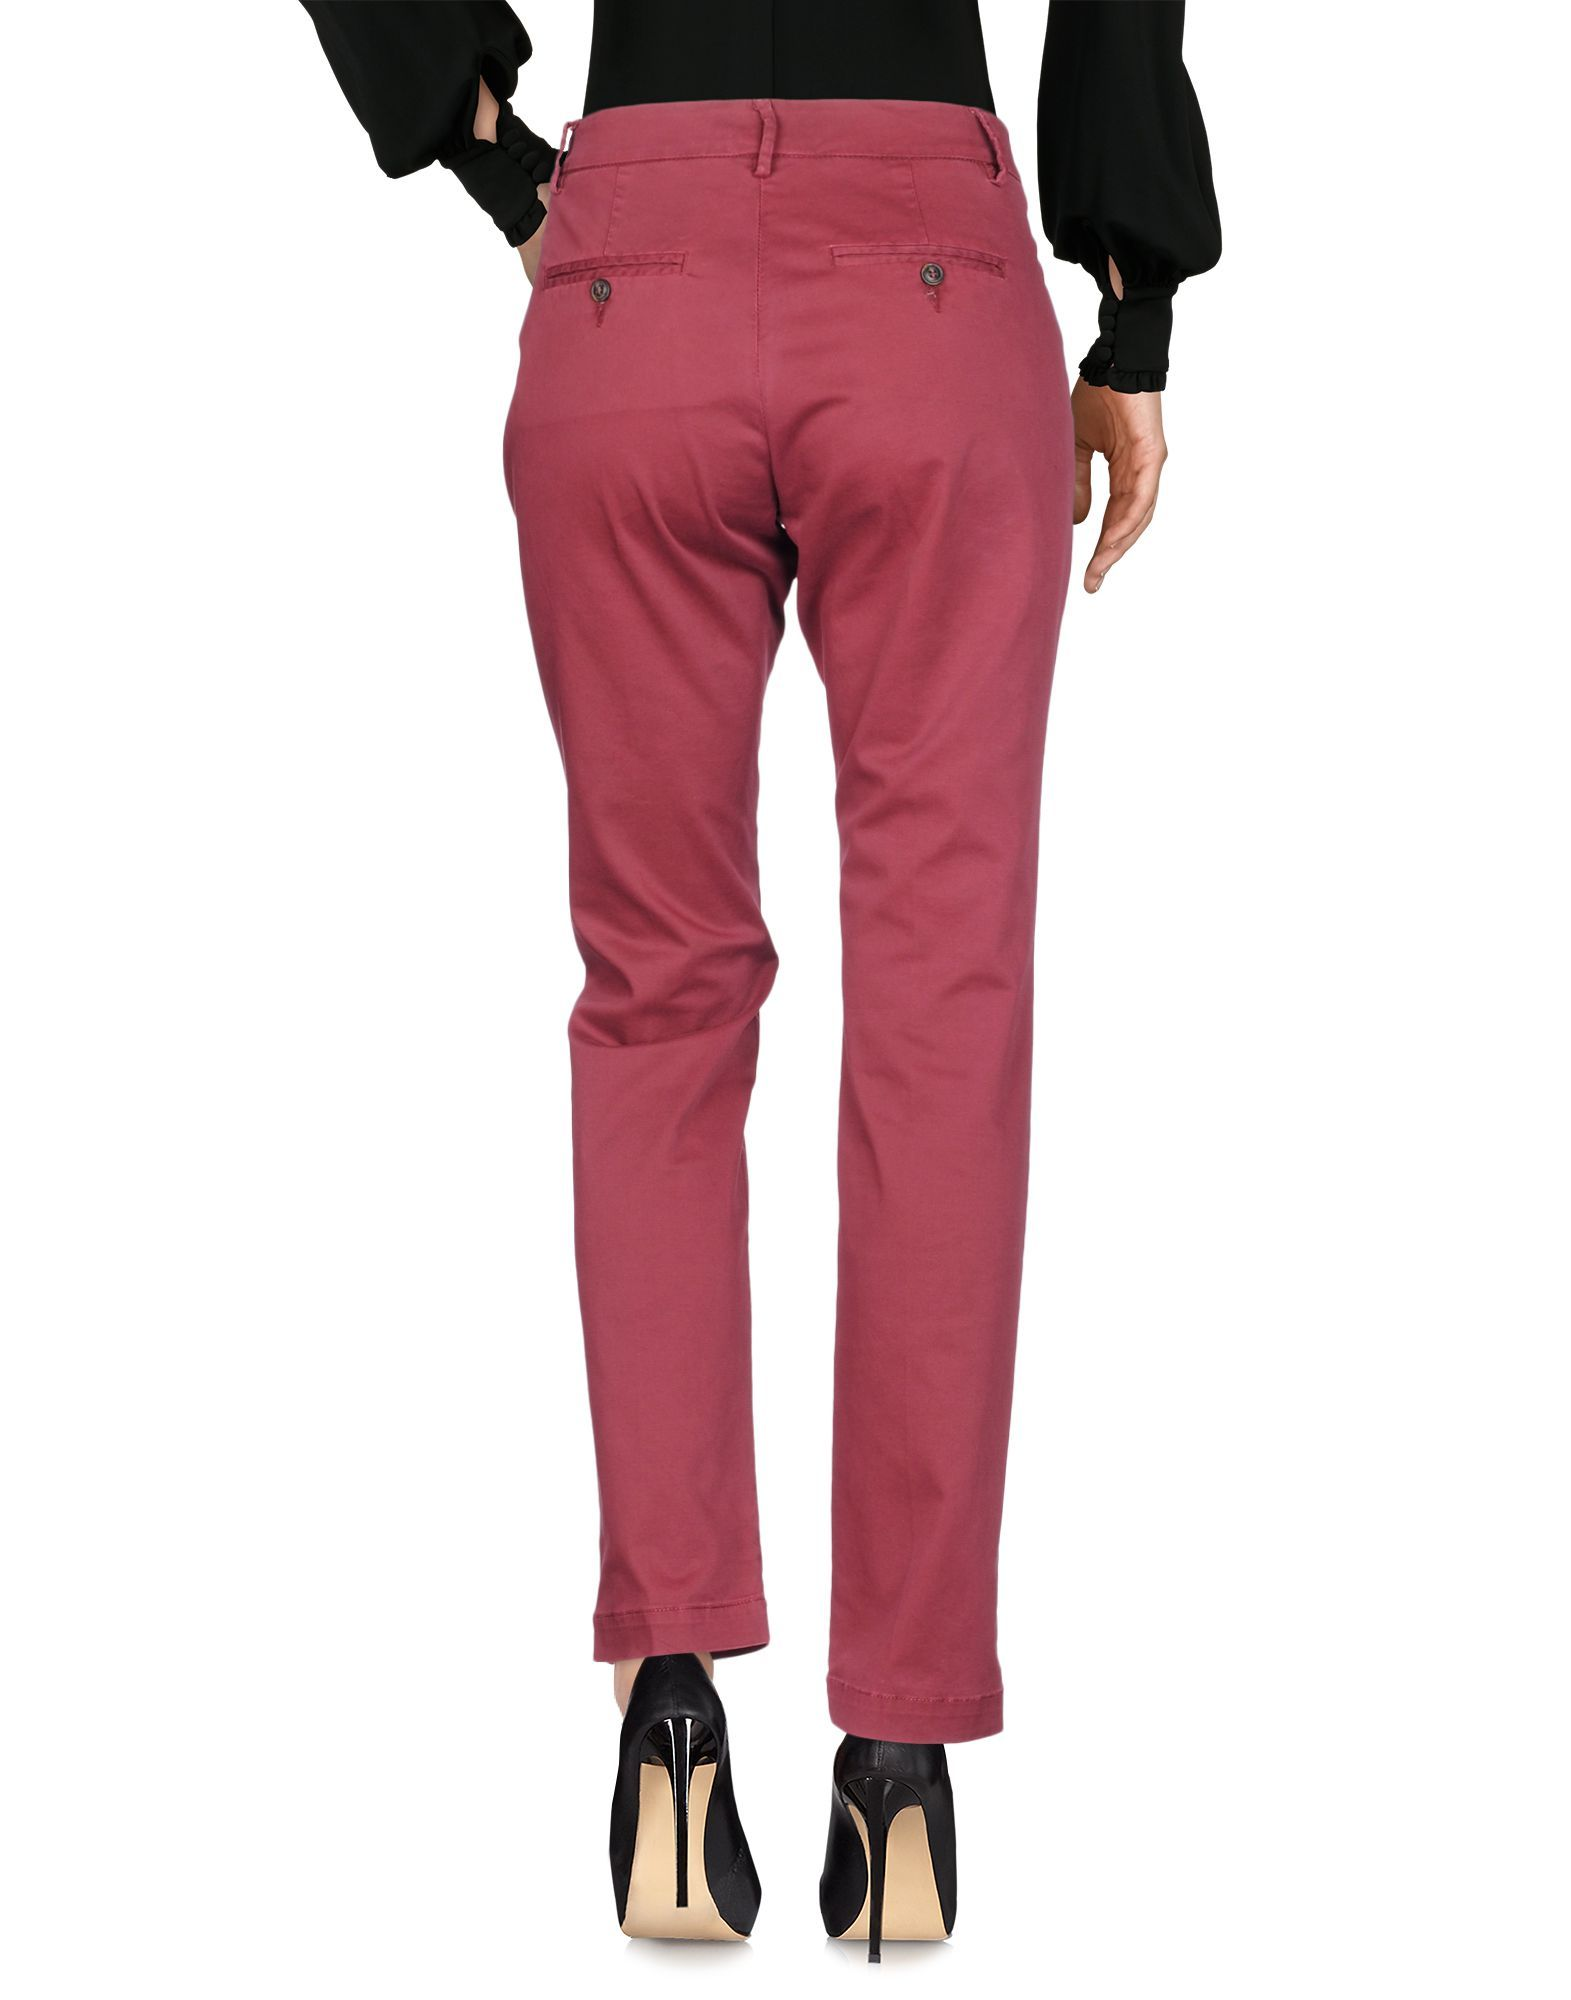 TROUSERS Woman Roÿ Roger'S Maroon Cotton